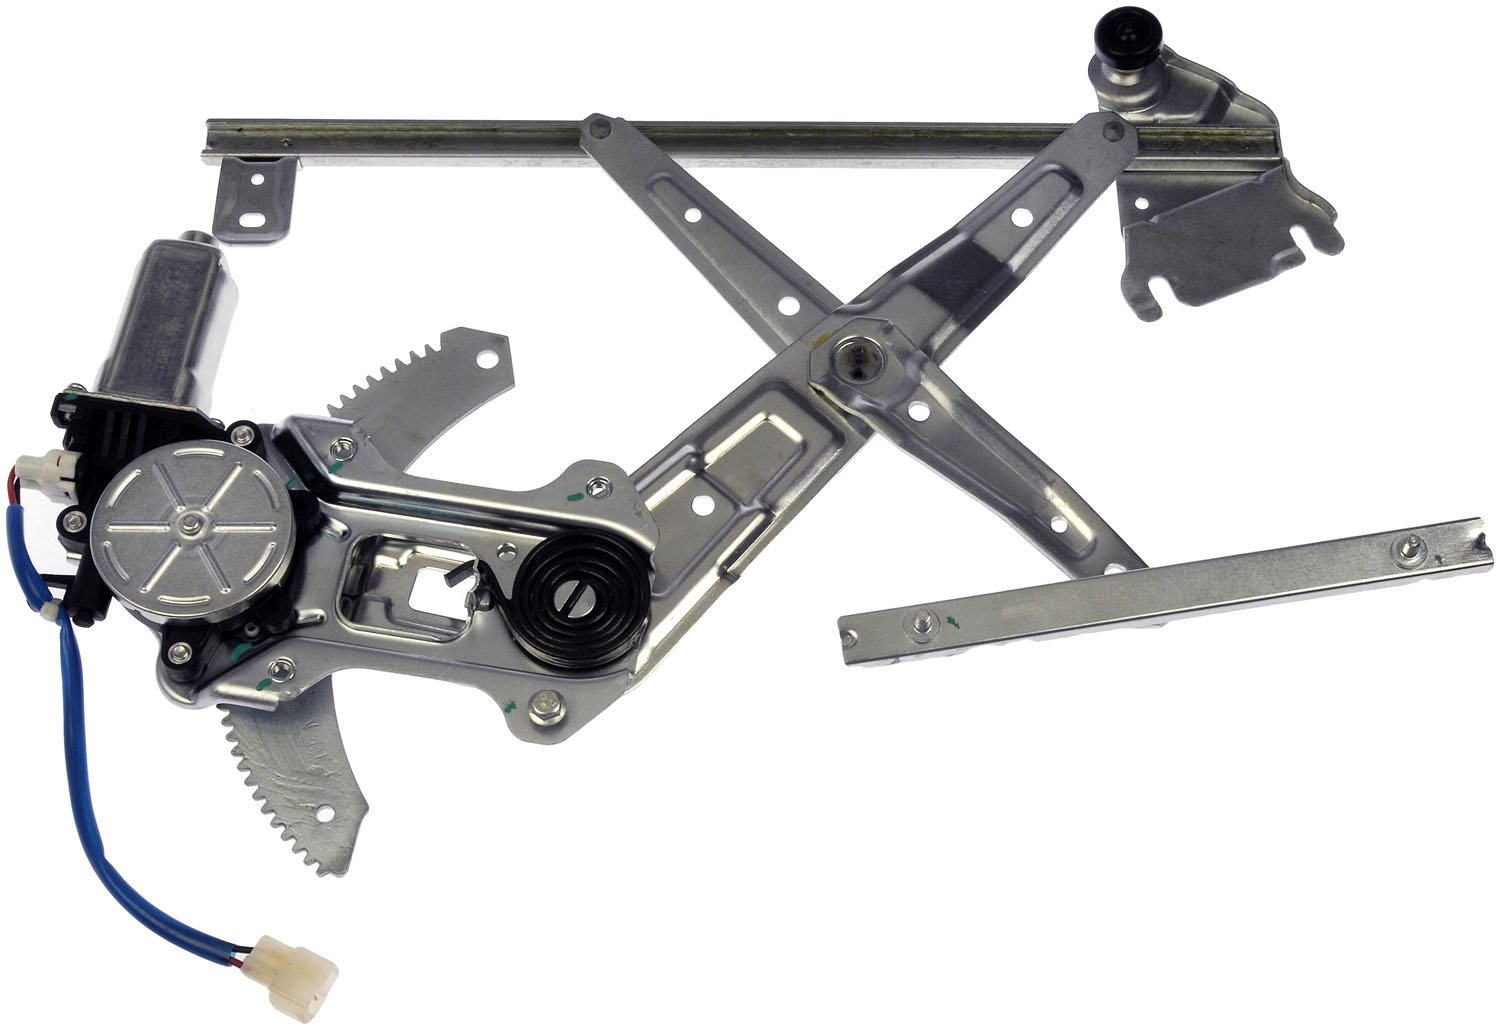 Amazon.com Dorman 741-003 Subaru Forester Front Driver Side Window Regulator with Motor Automotive  sc 1 st  Amazon.com & Amazon.com: Dorman 741-003 Subaru Forester Front Driver Side Window ...